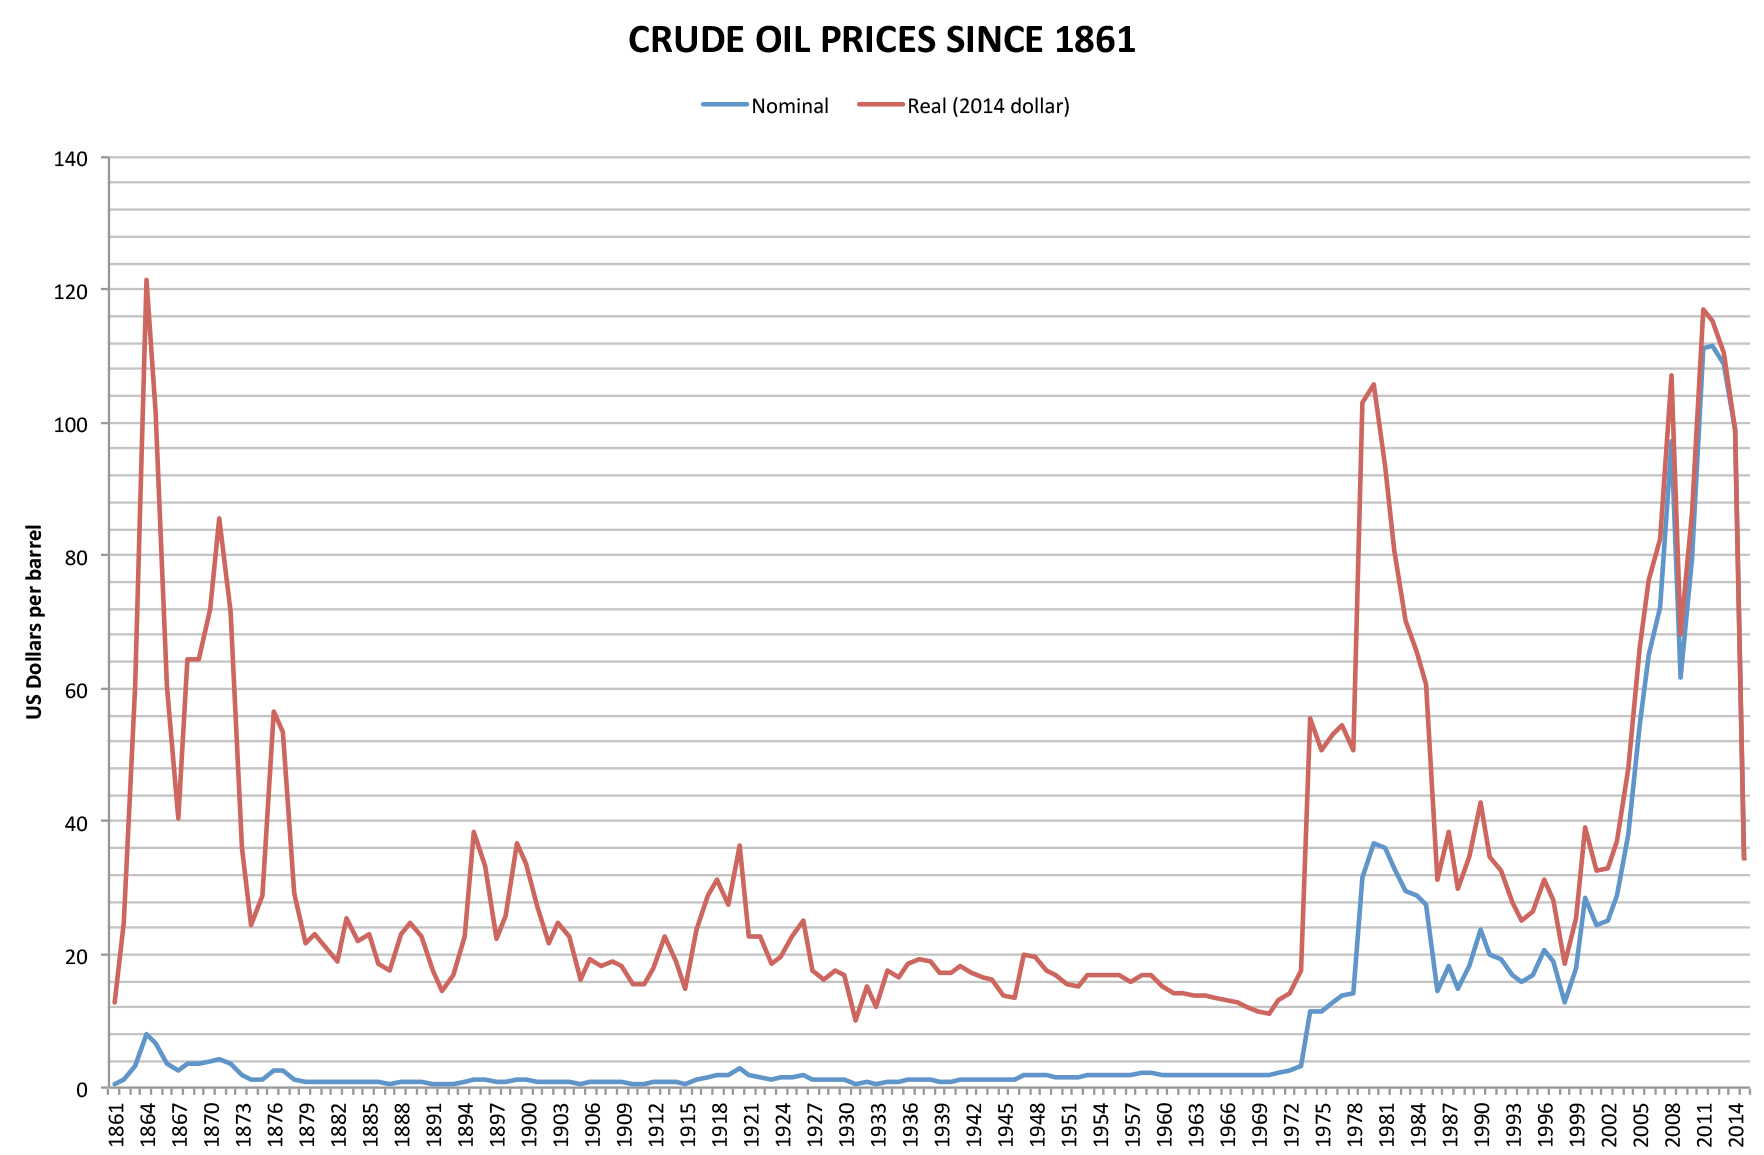 http://upload.wikimedia.org/wikipedia/commons/b/b0/Crude_oil_prices_since_1861.png